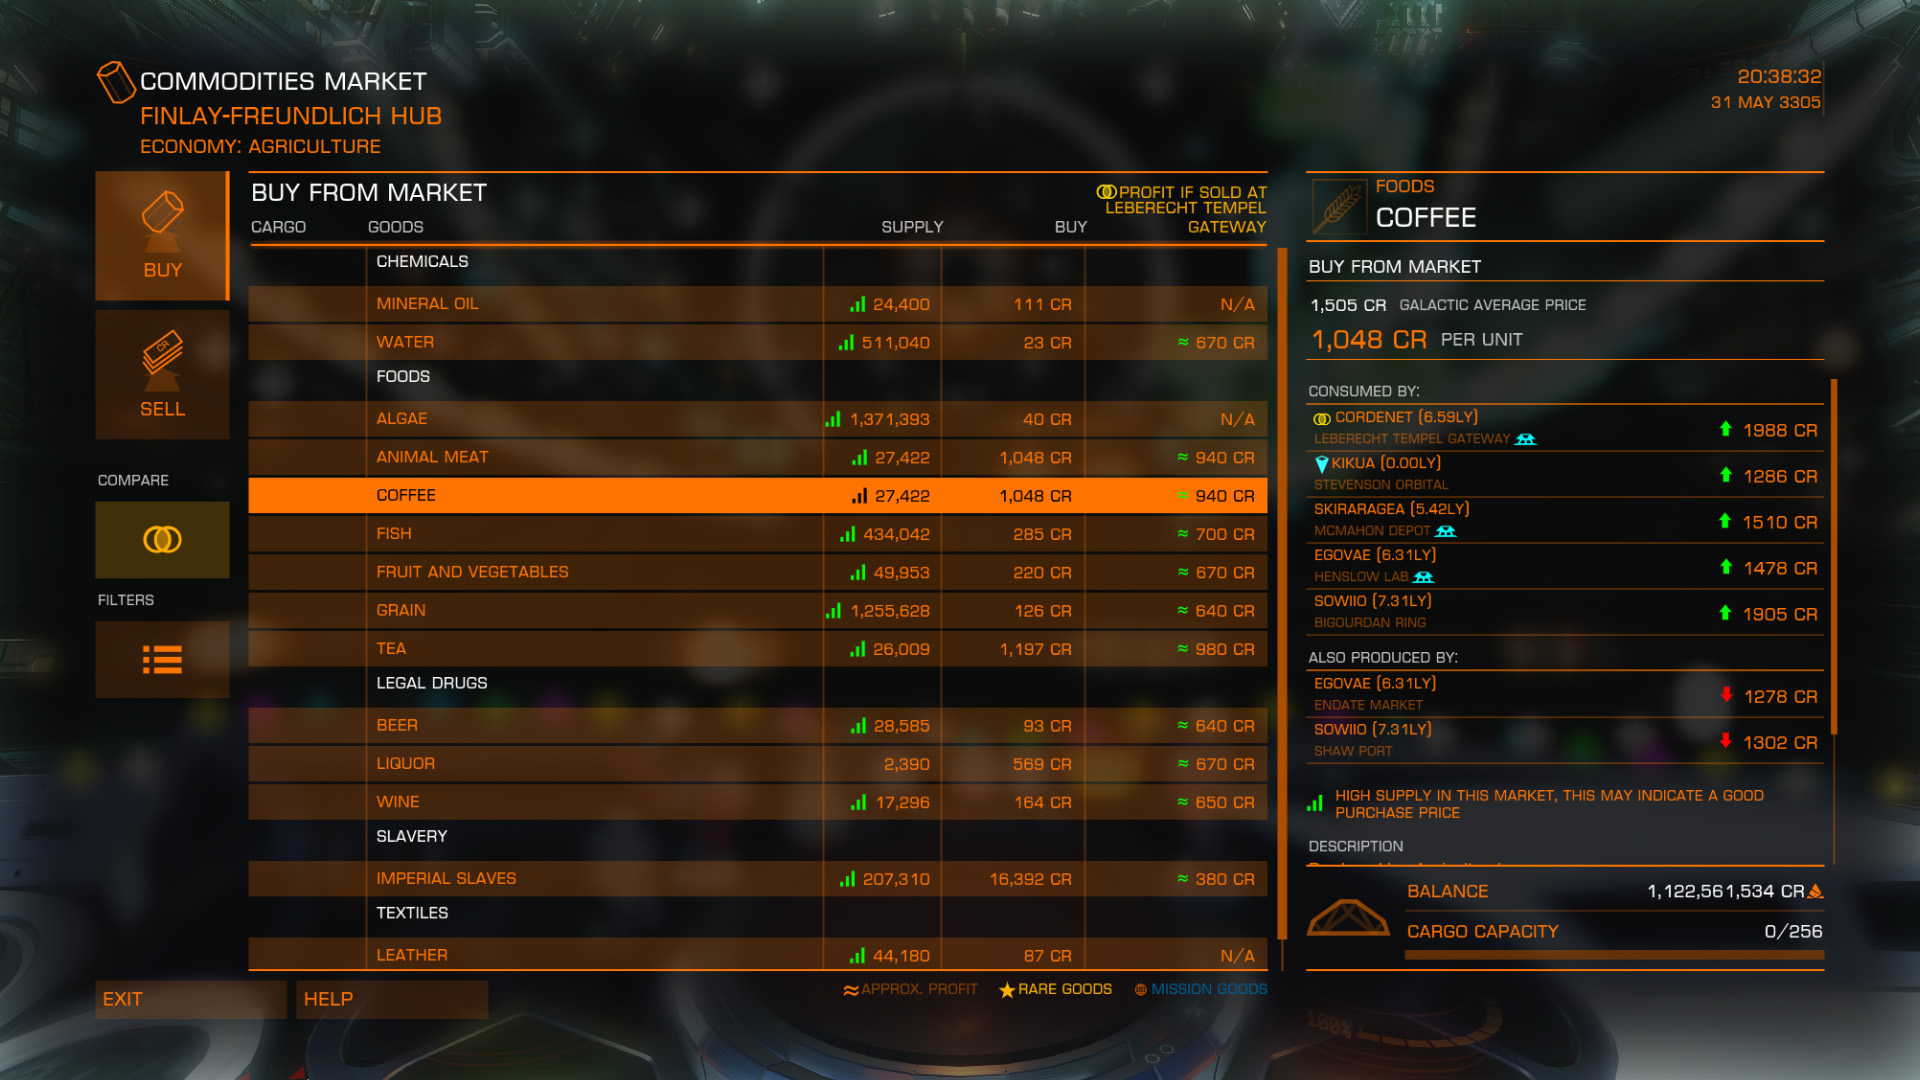 Elite: Dangerous beginner's guide: a screenshot showing the supply and demand for coffee on the commodities market